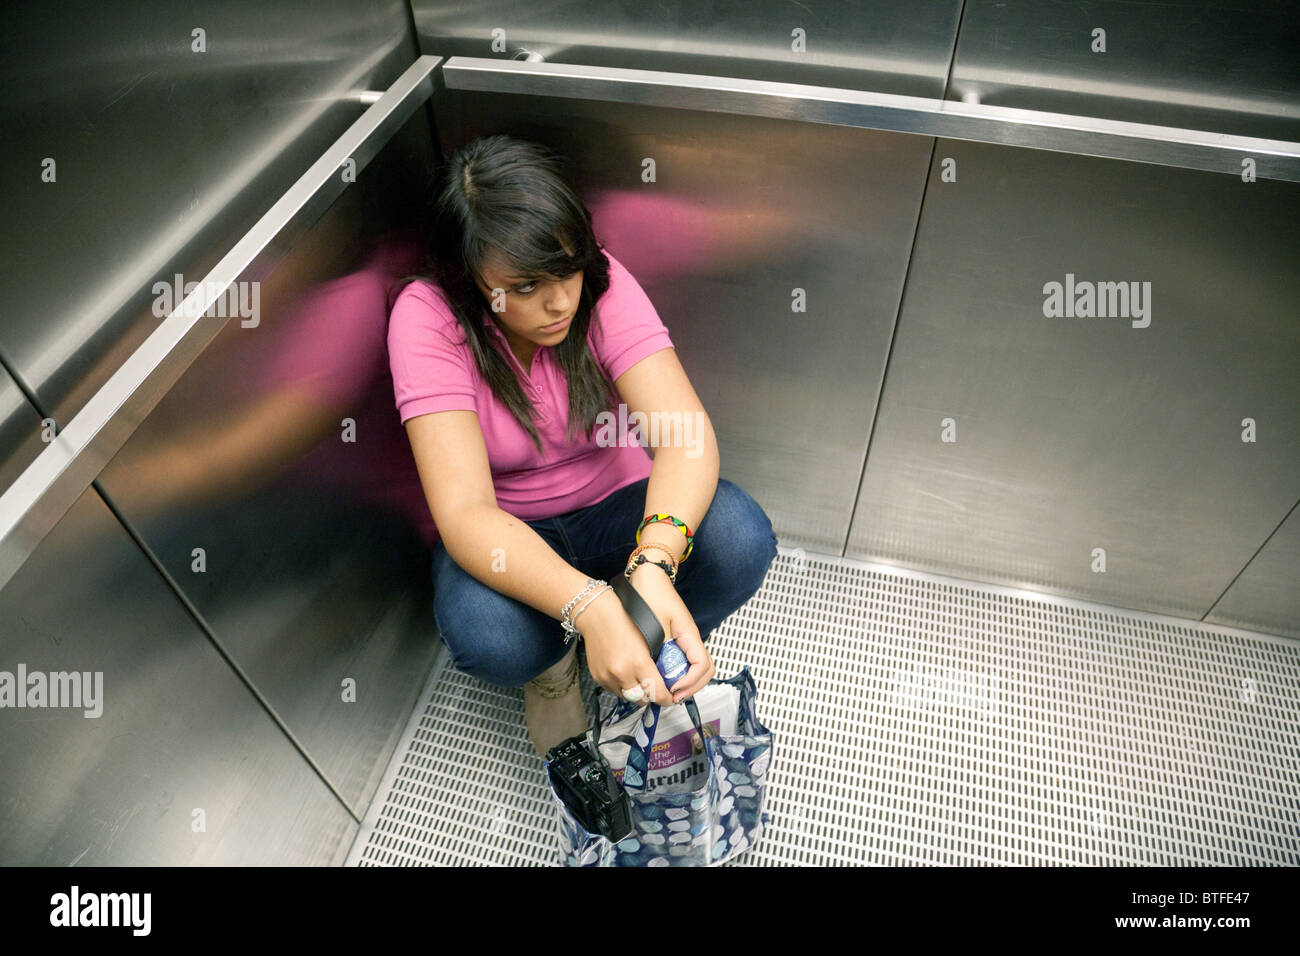 A teenage girl sitting in the corner of a lift - concept of Claustrophobia - Stock Image